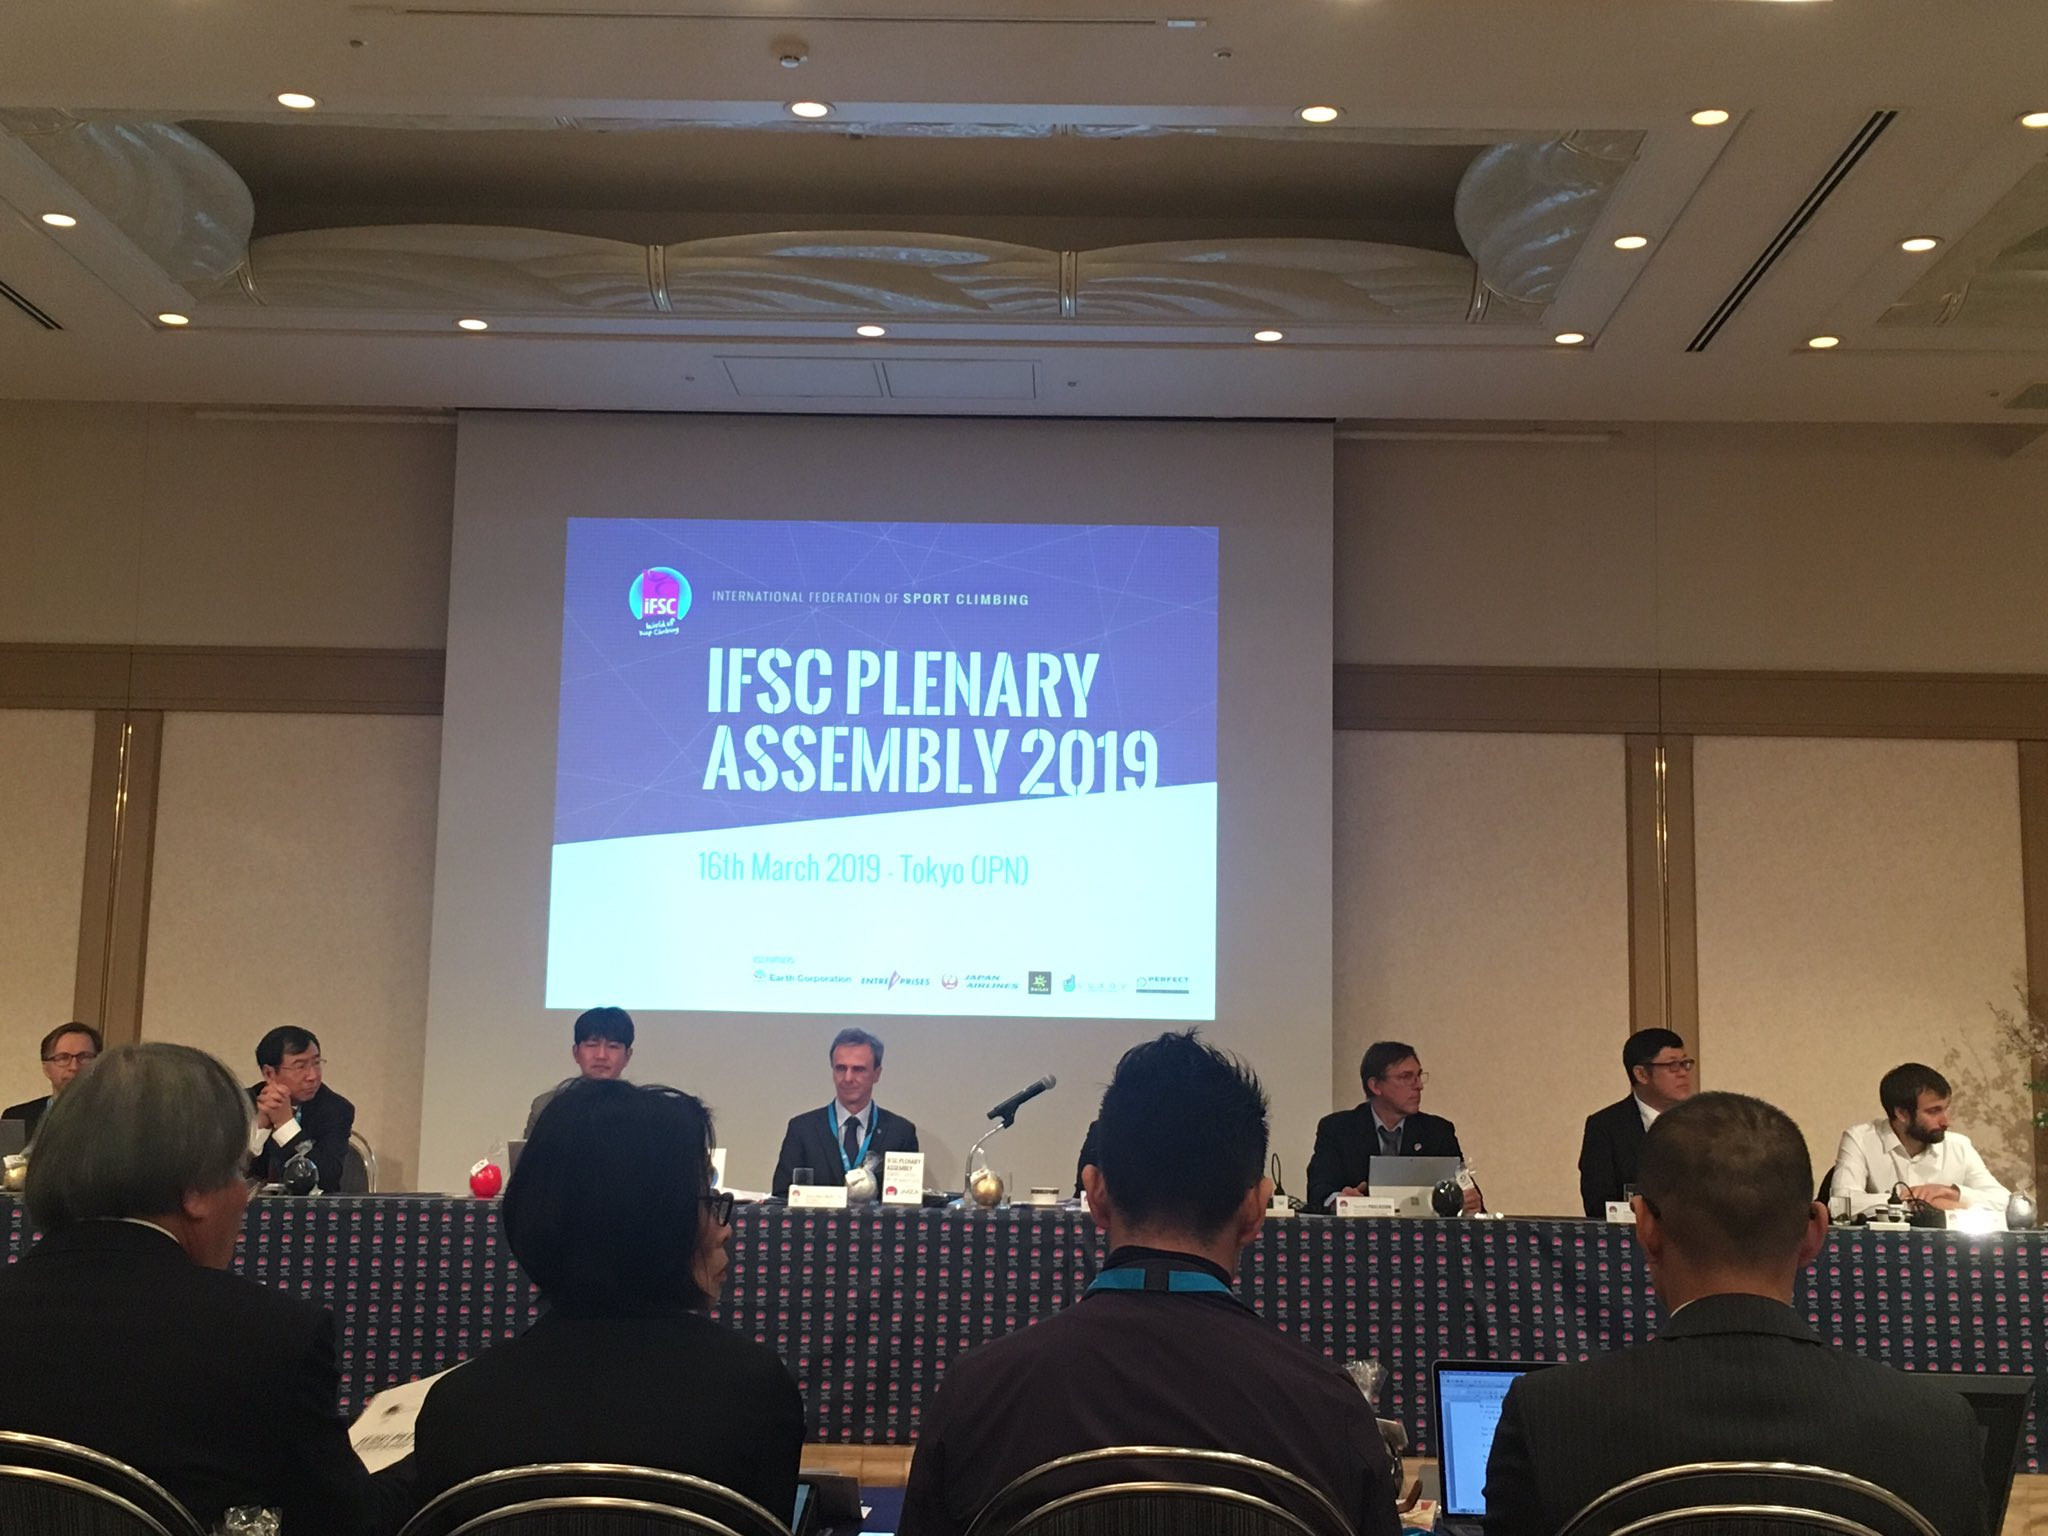 IFSC Plenary Assembly to be held virtually due to COVID-19 pandemic